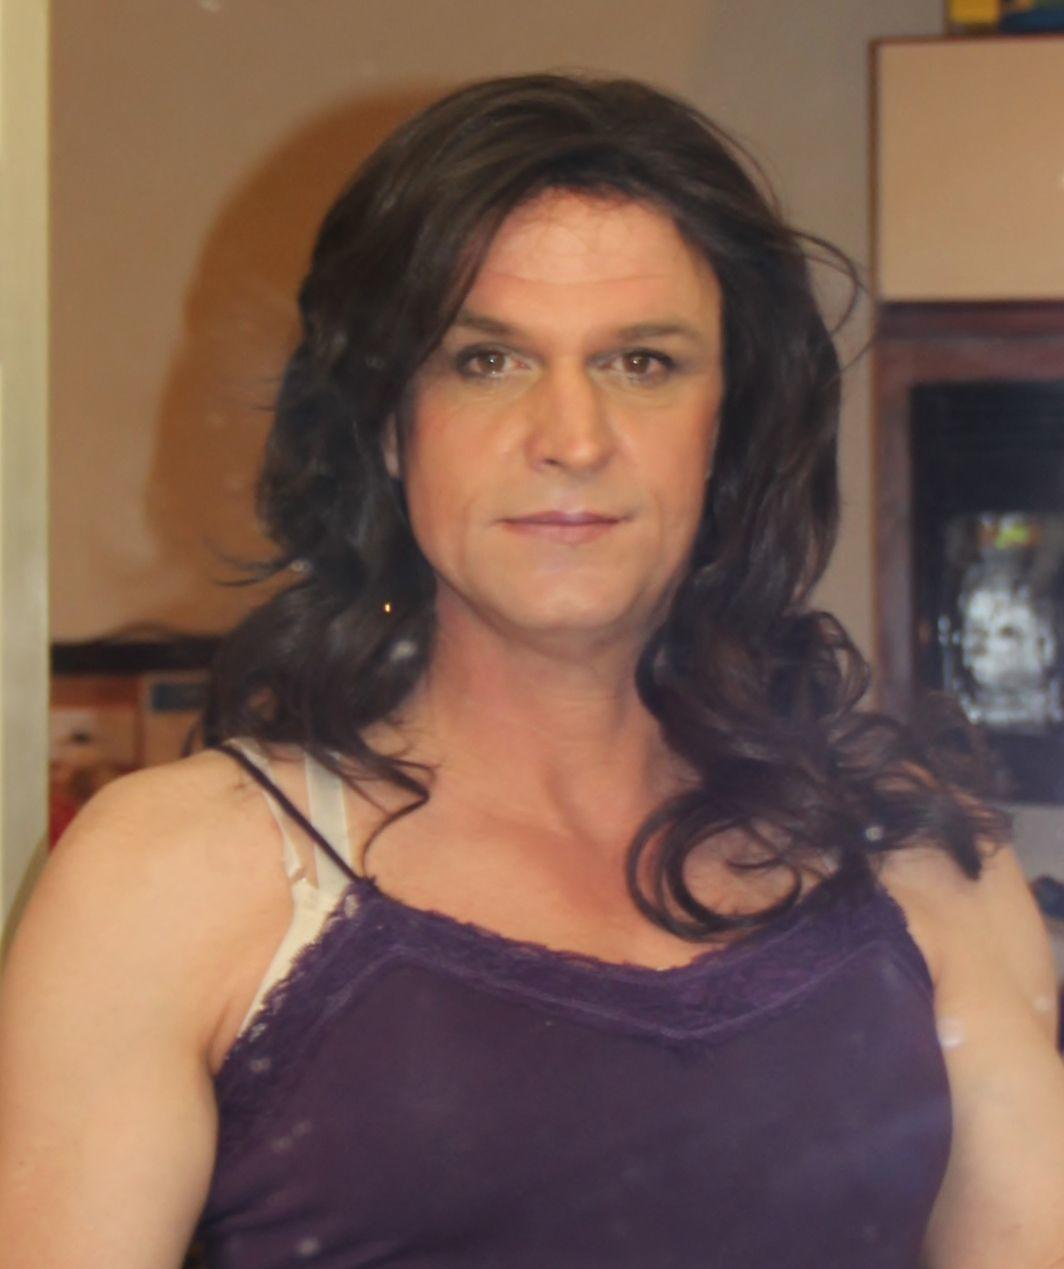 dating a transman yahoo I have a question for all my fellow straight women giving that many transmen (ftm transsexuals) often look/act/become astoundingly masculine, would you ever consider dating a transman.